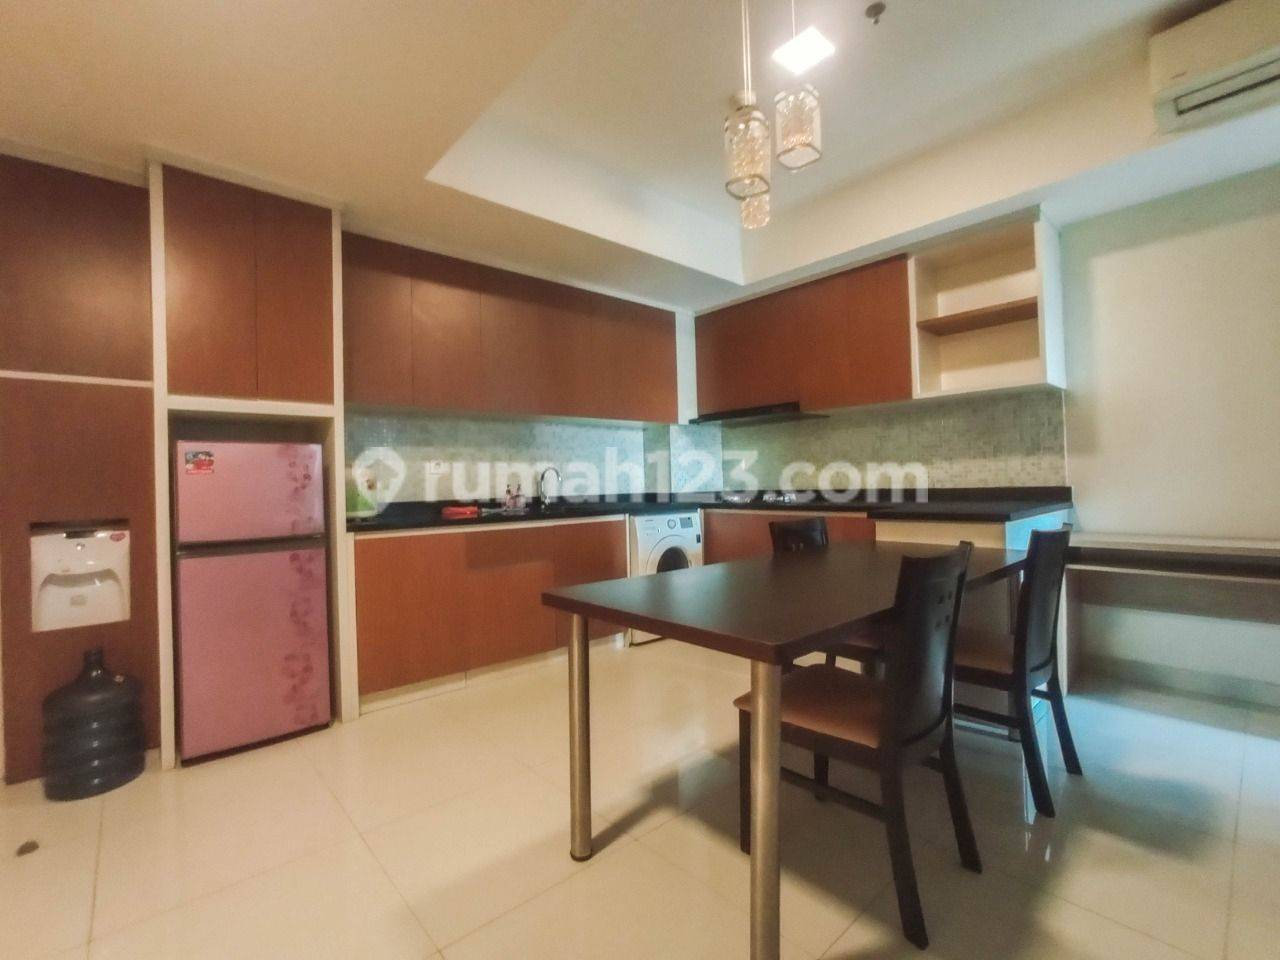 Apartemen The Mansion Jasmine Tower Bellavista 2BR Full Furnish Siap Huni